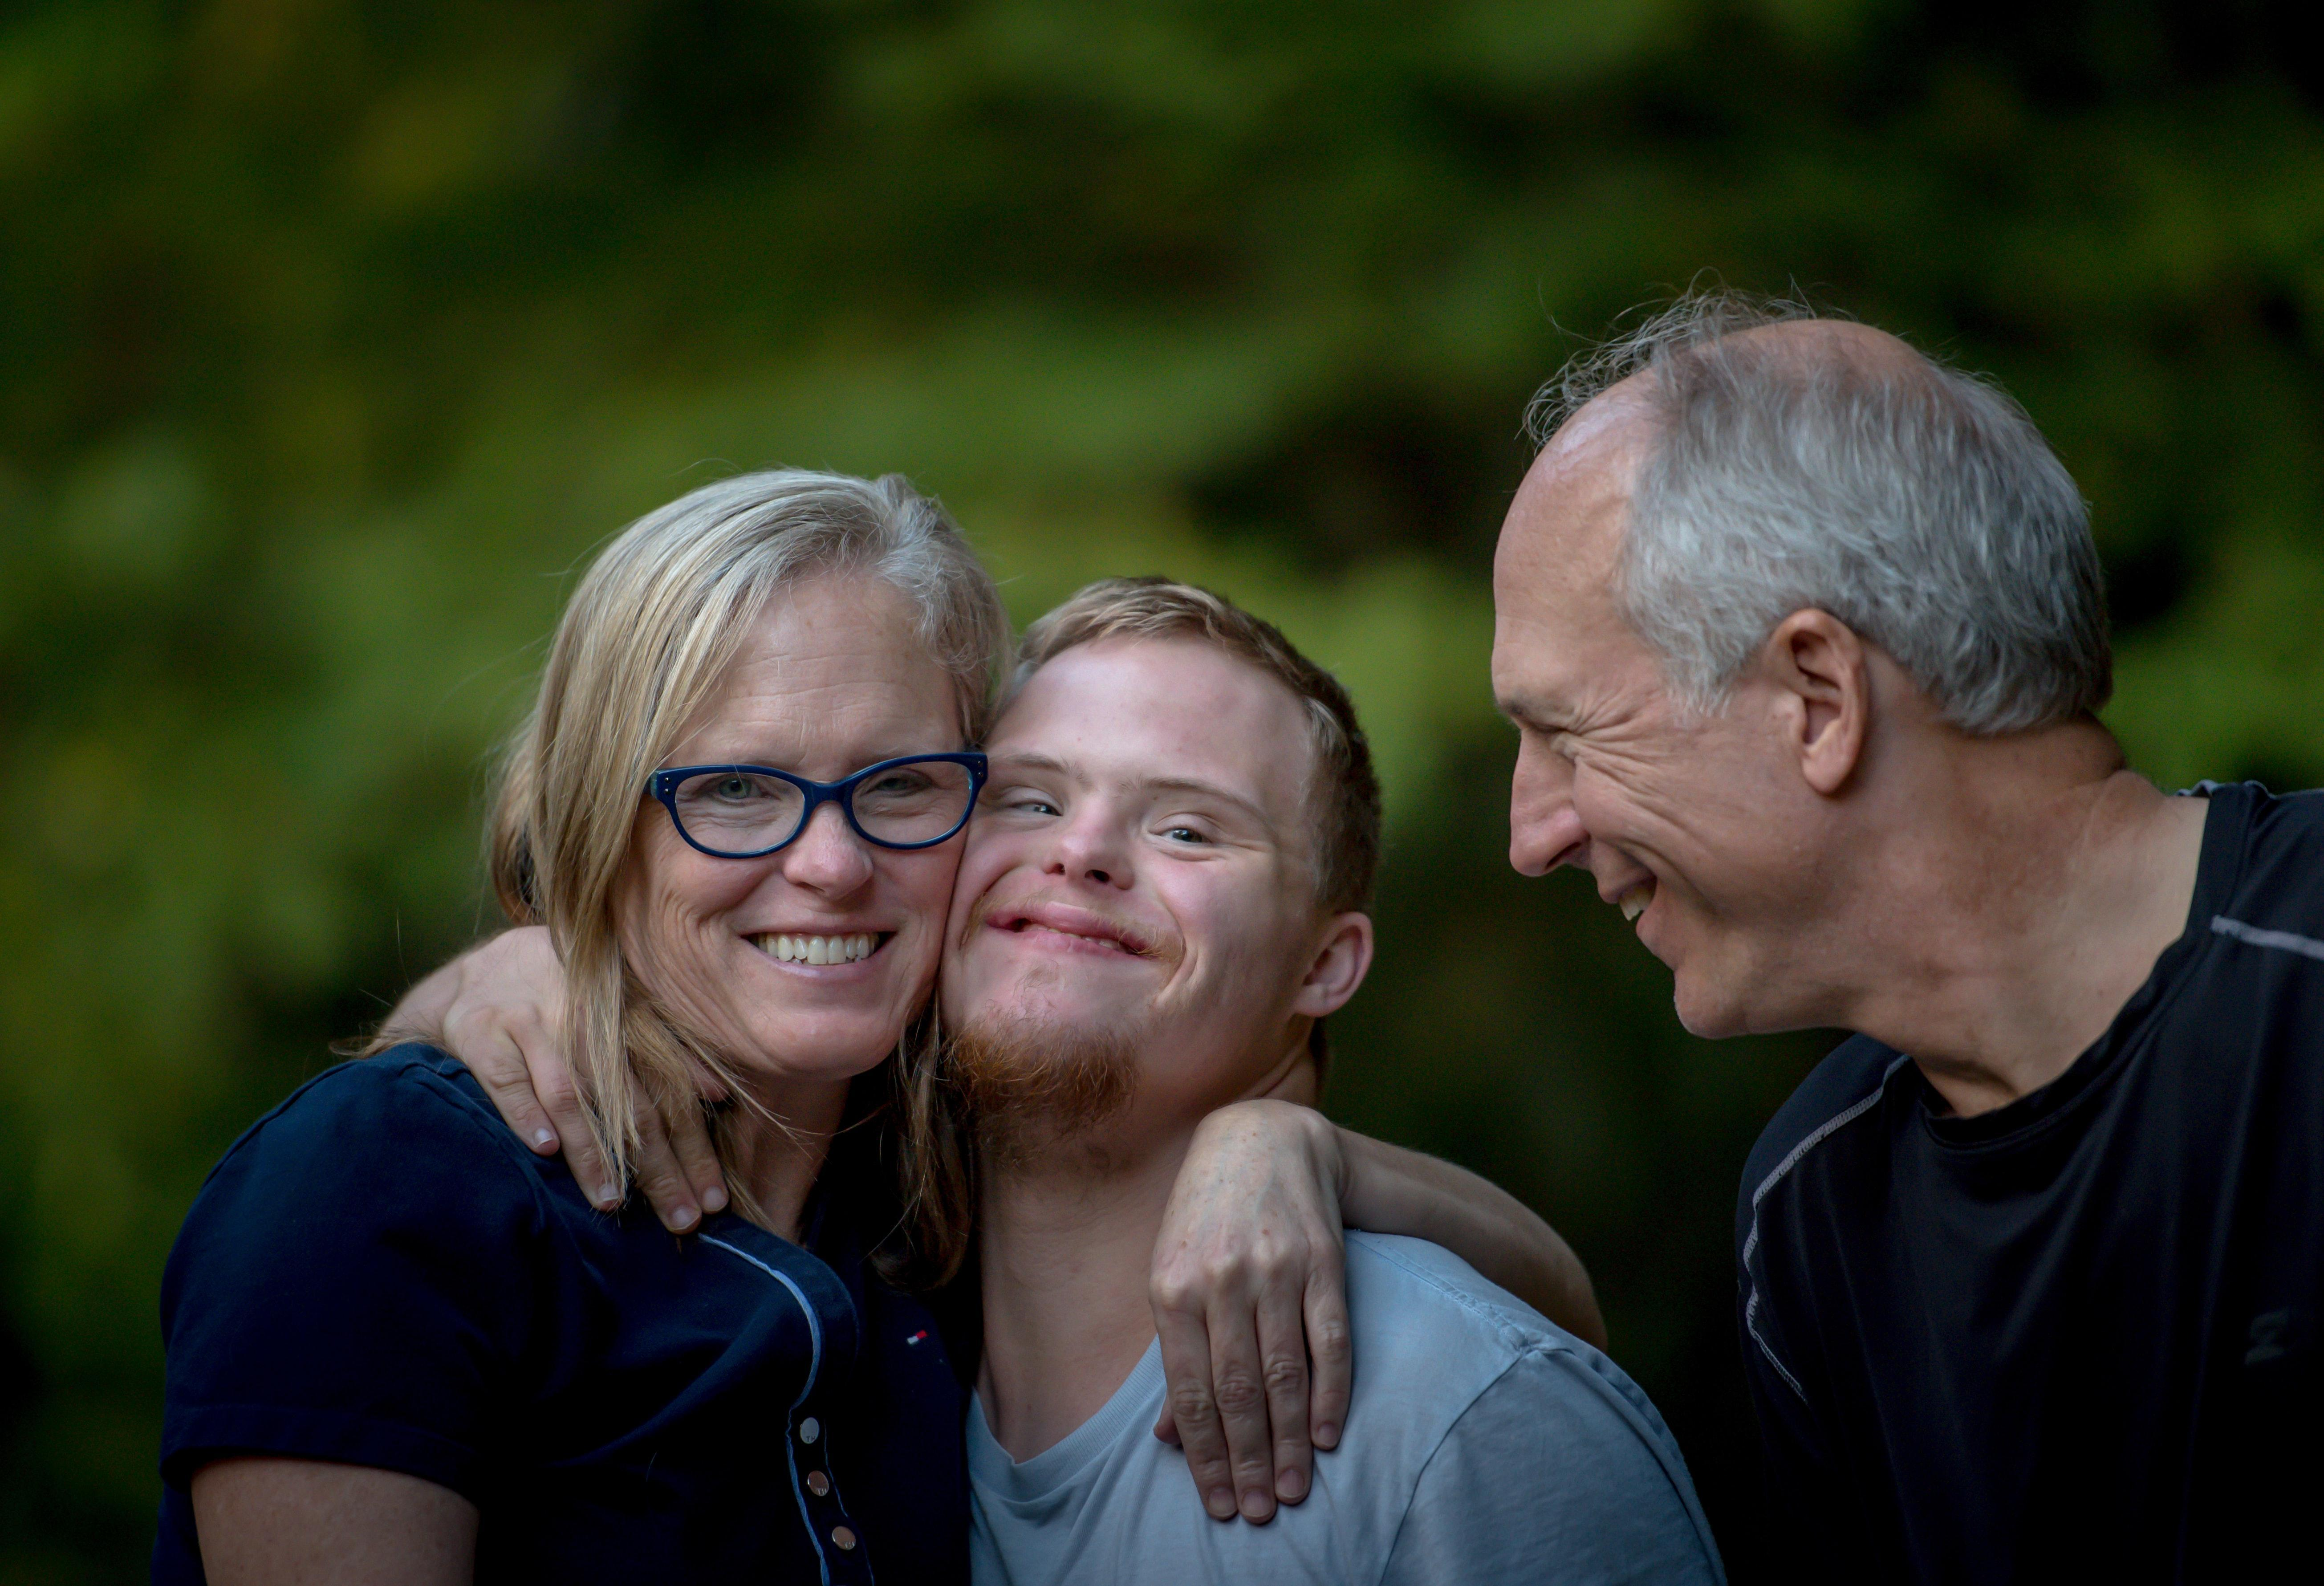 A mother hugging her adult son who has down syndrome while his father smiles at them both.